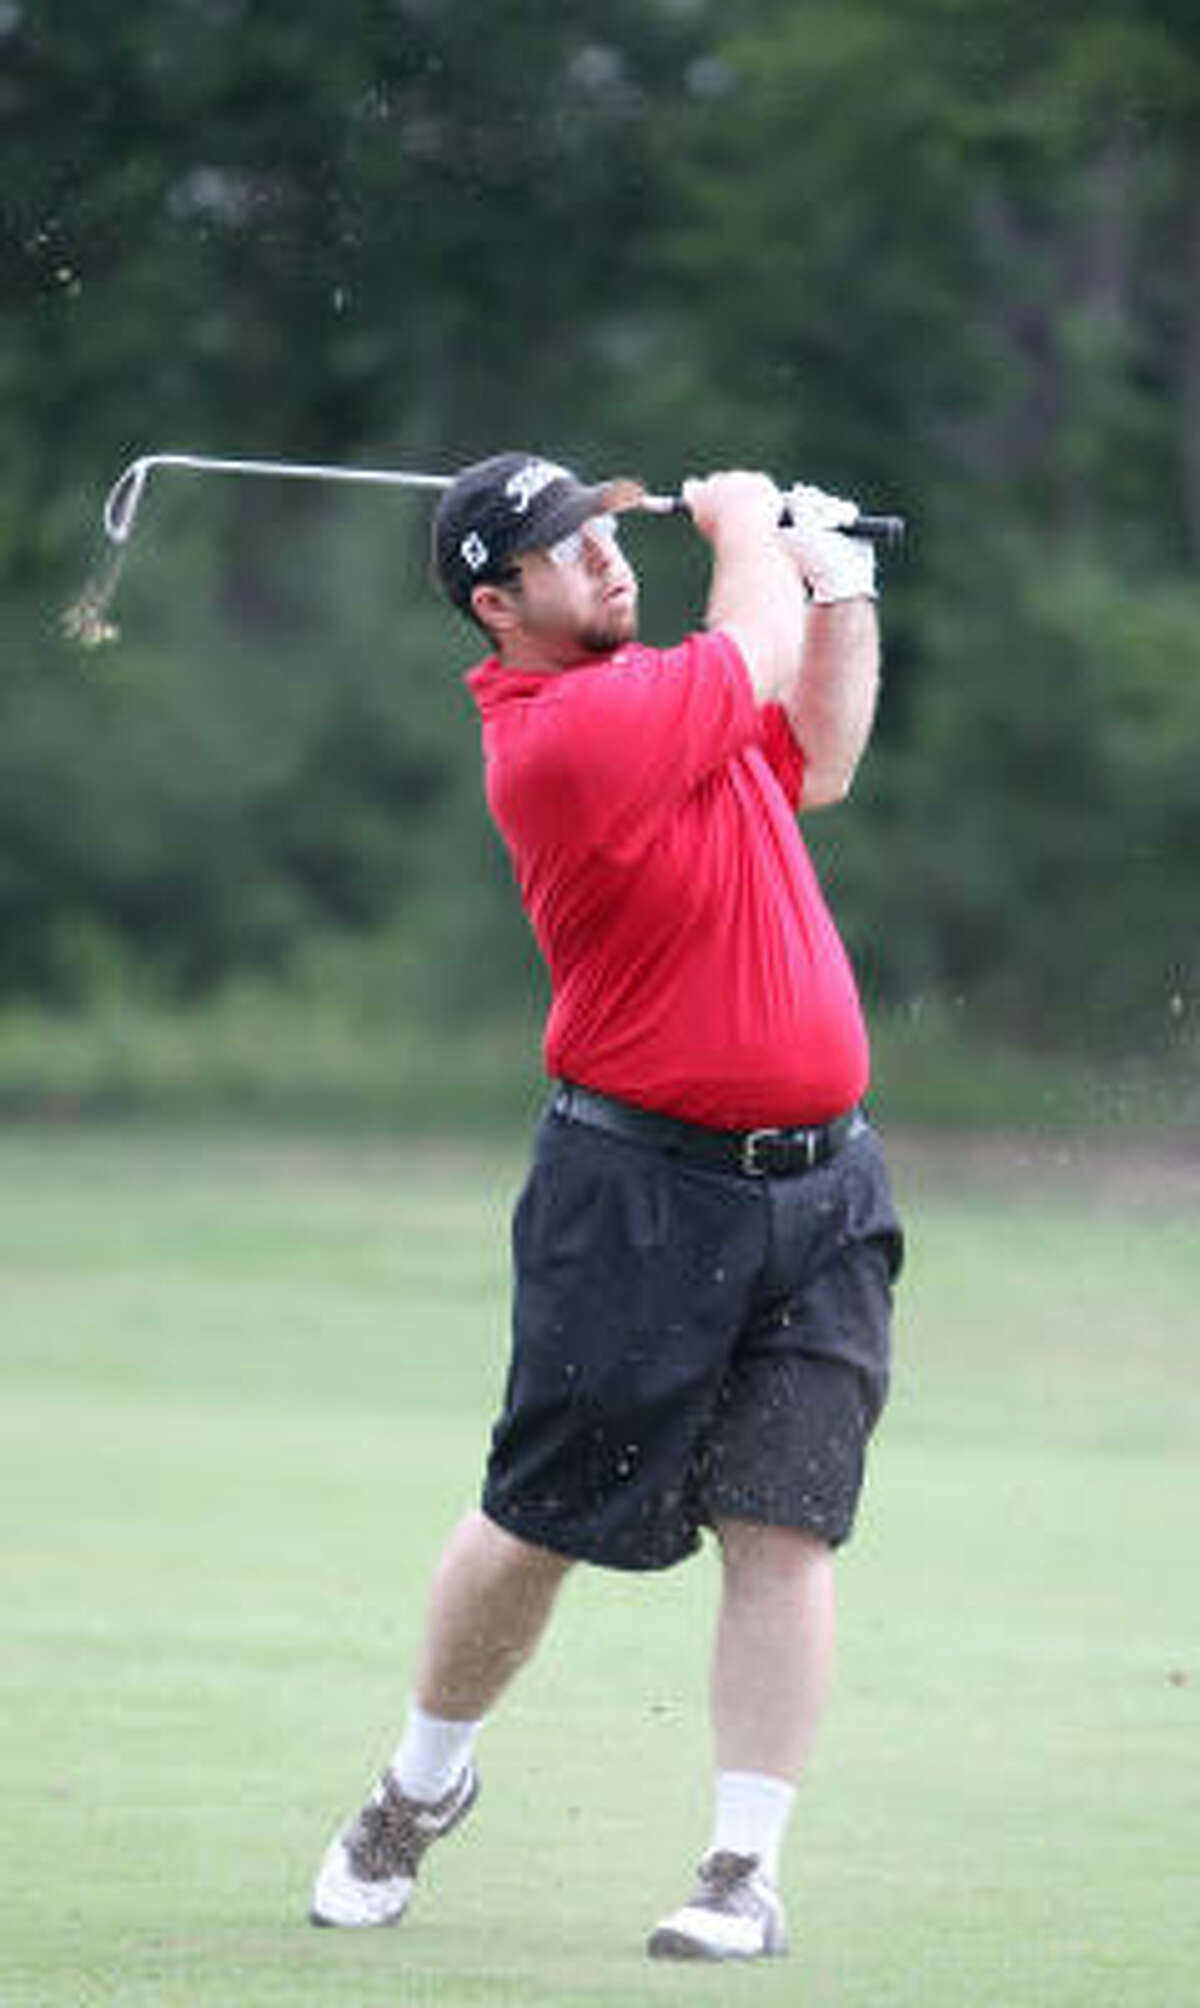 Blair Claghorn of the Spring Panthers Special Olympics golf team watches a ball fly to the green during a June 7 practice. Claghorn is going to be competing in the Special Olympics national tournament in Lincoln, Neb. as a Level 5 golfer.